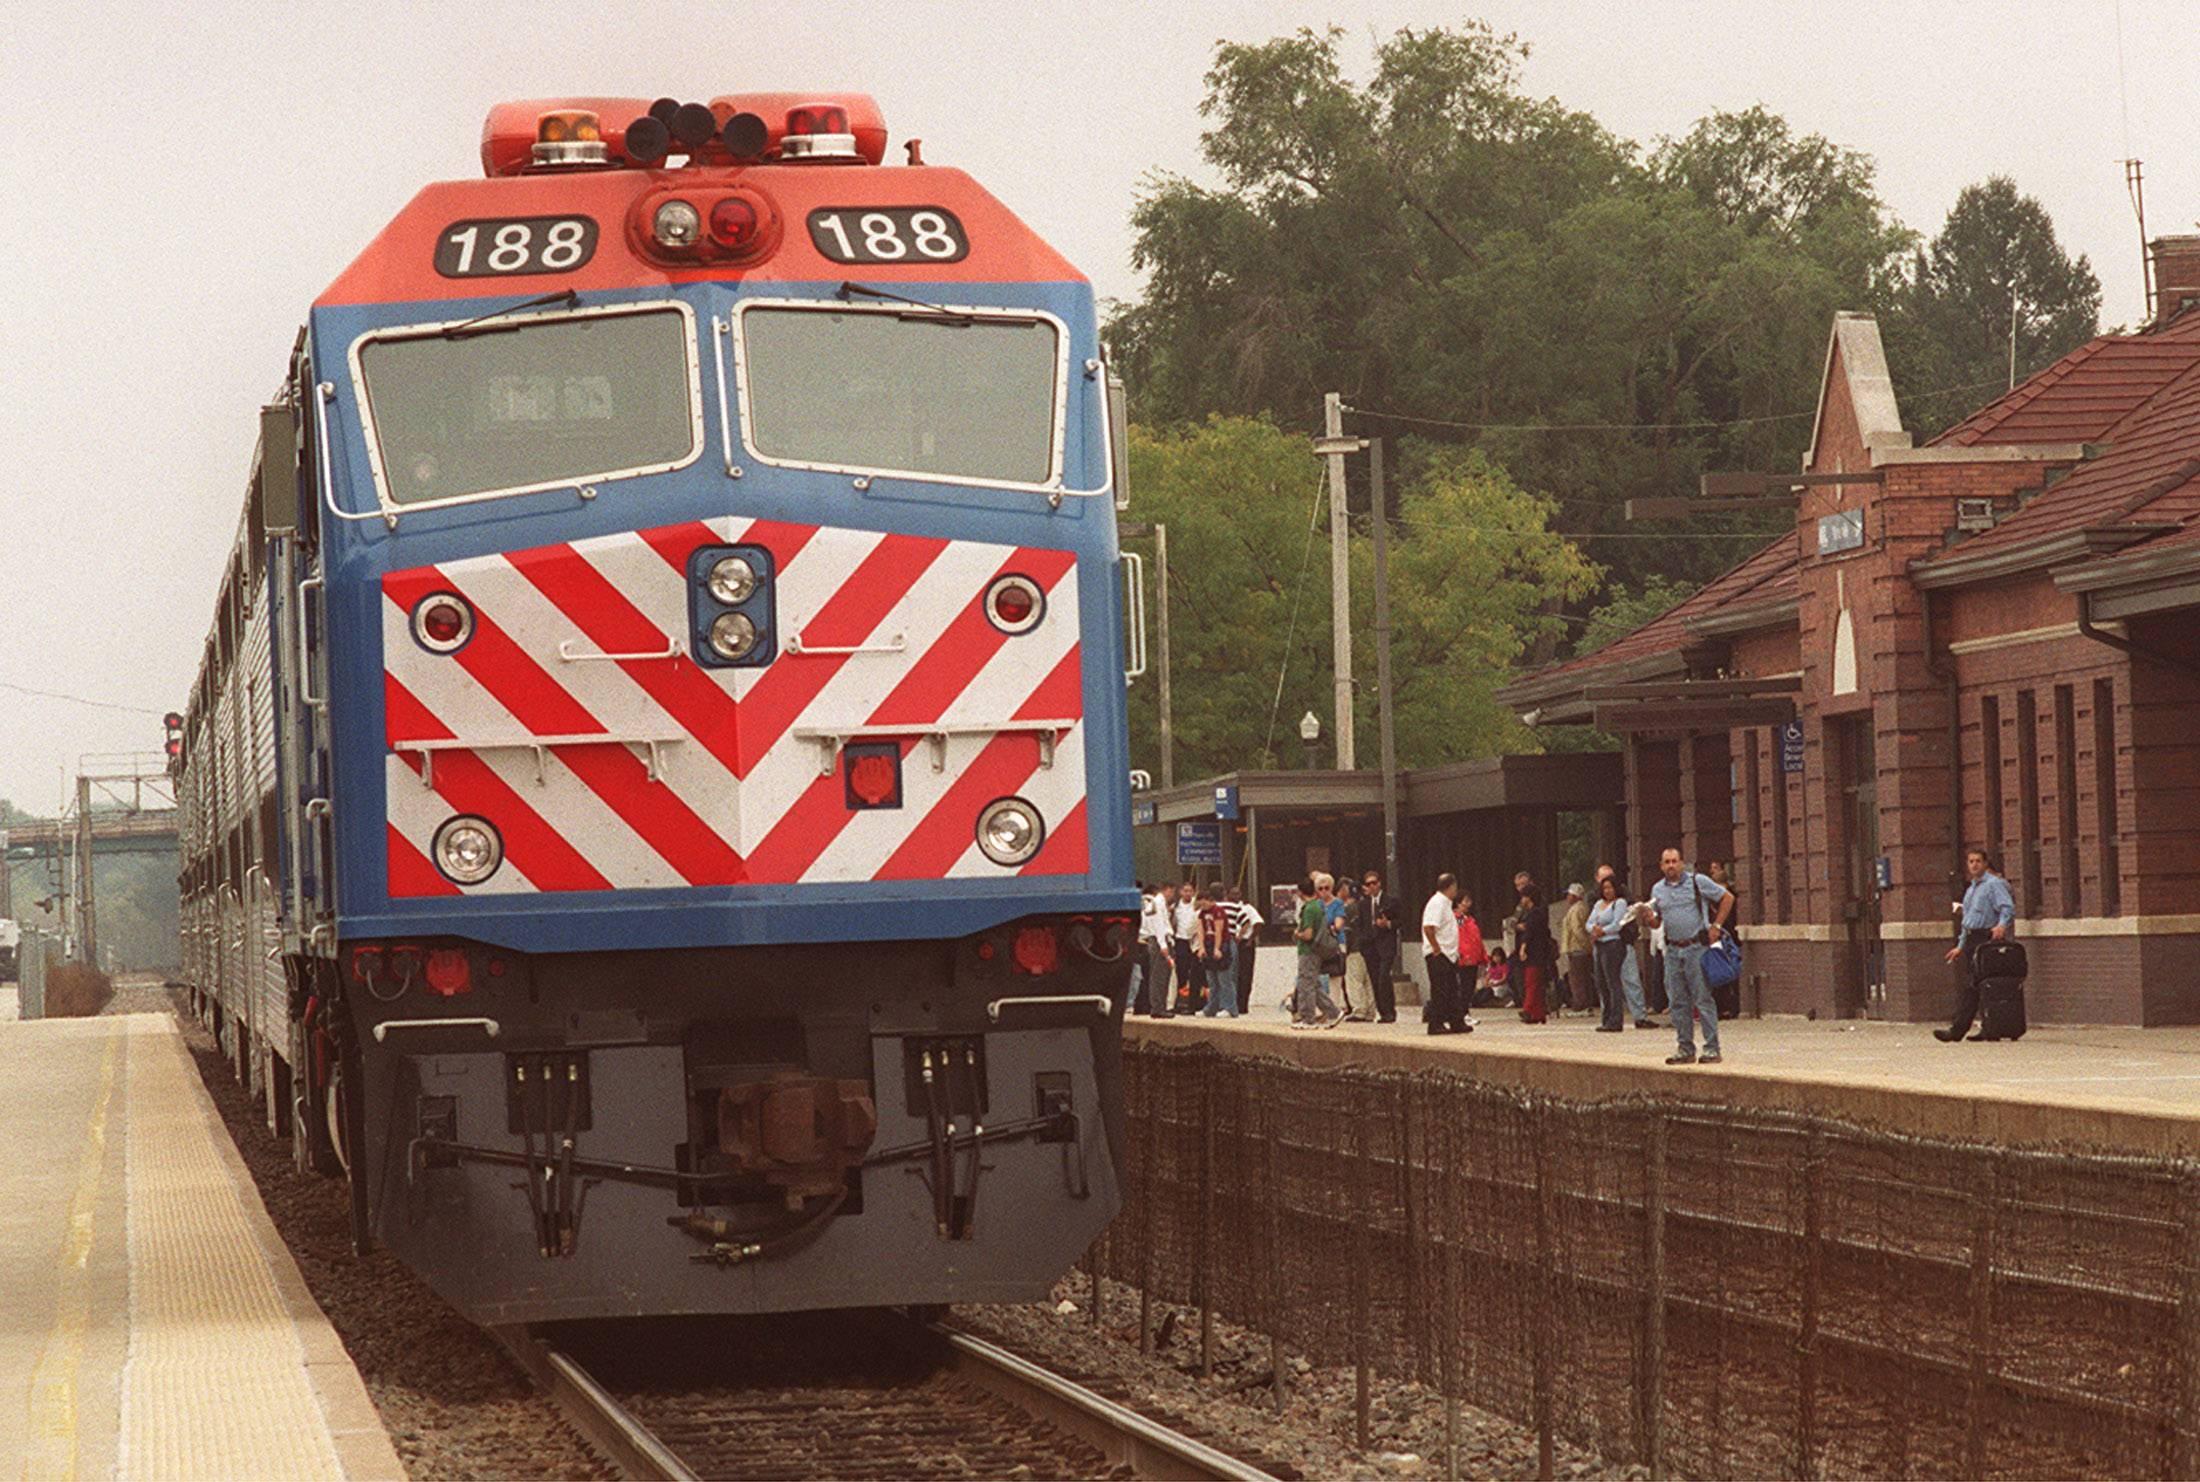 One thing the state's executive inspector general and Metra agree on -- the safe operation of train is paramount.